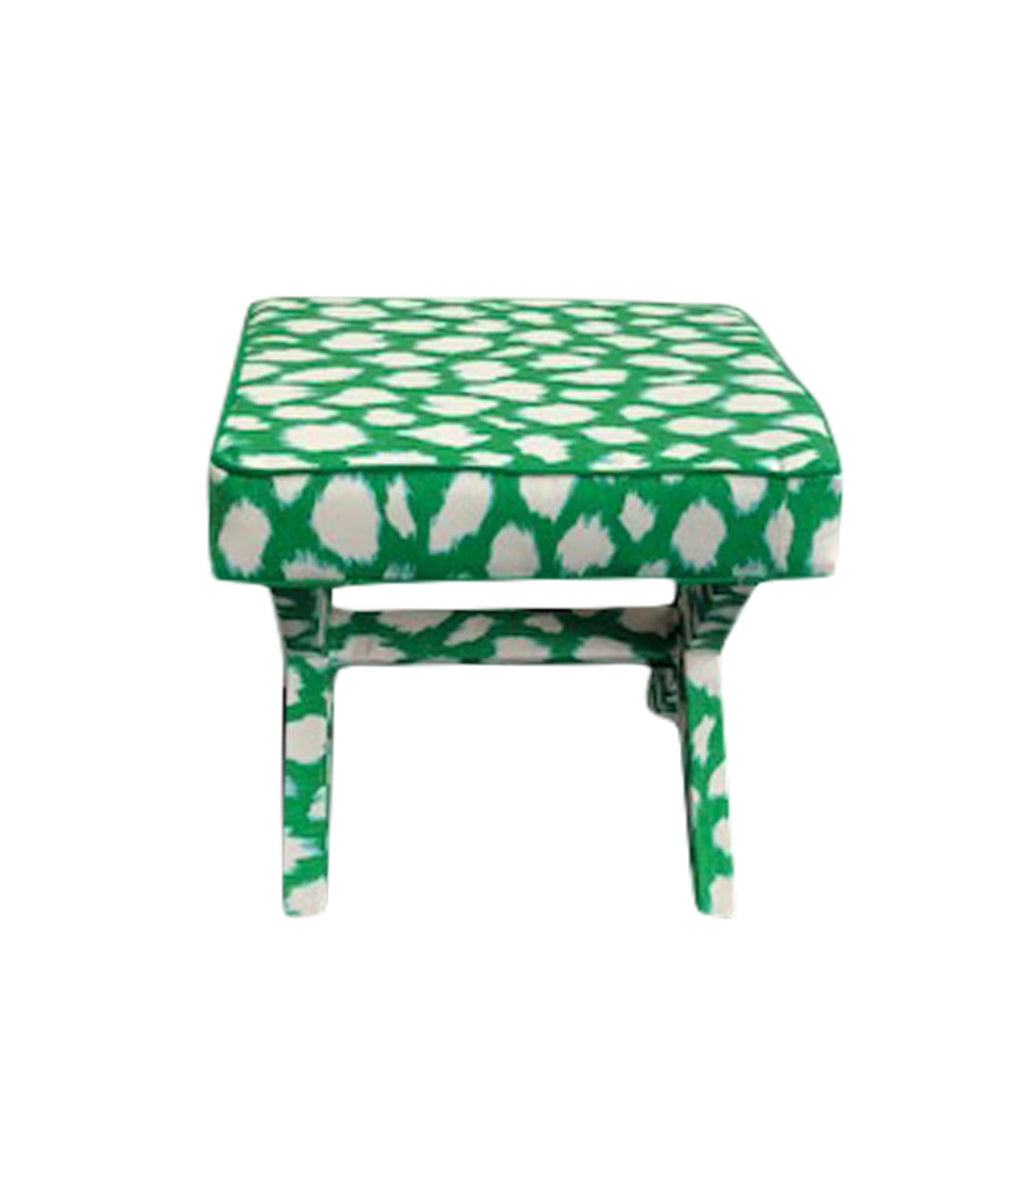 X-Bench Kate Spade Leokat Picnic Green fabric, Kelly green bench by Lilly and Co.